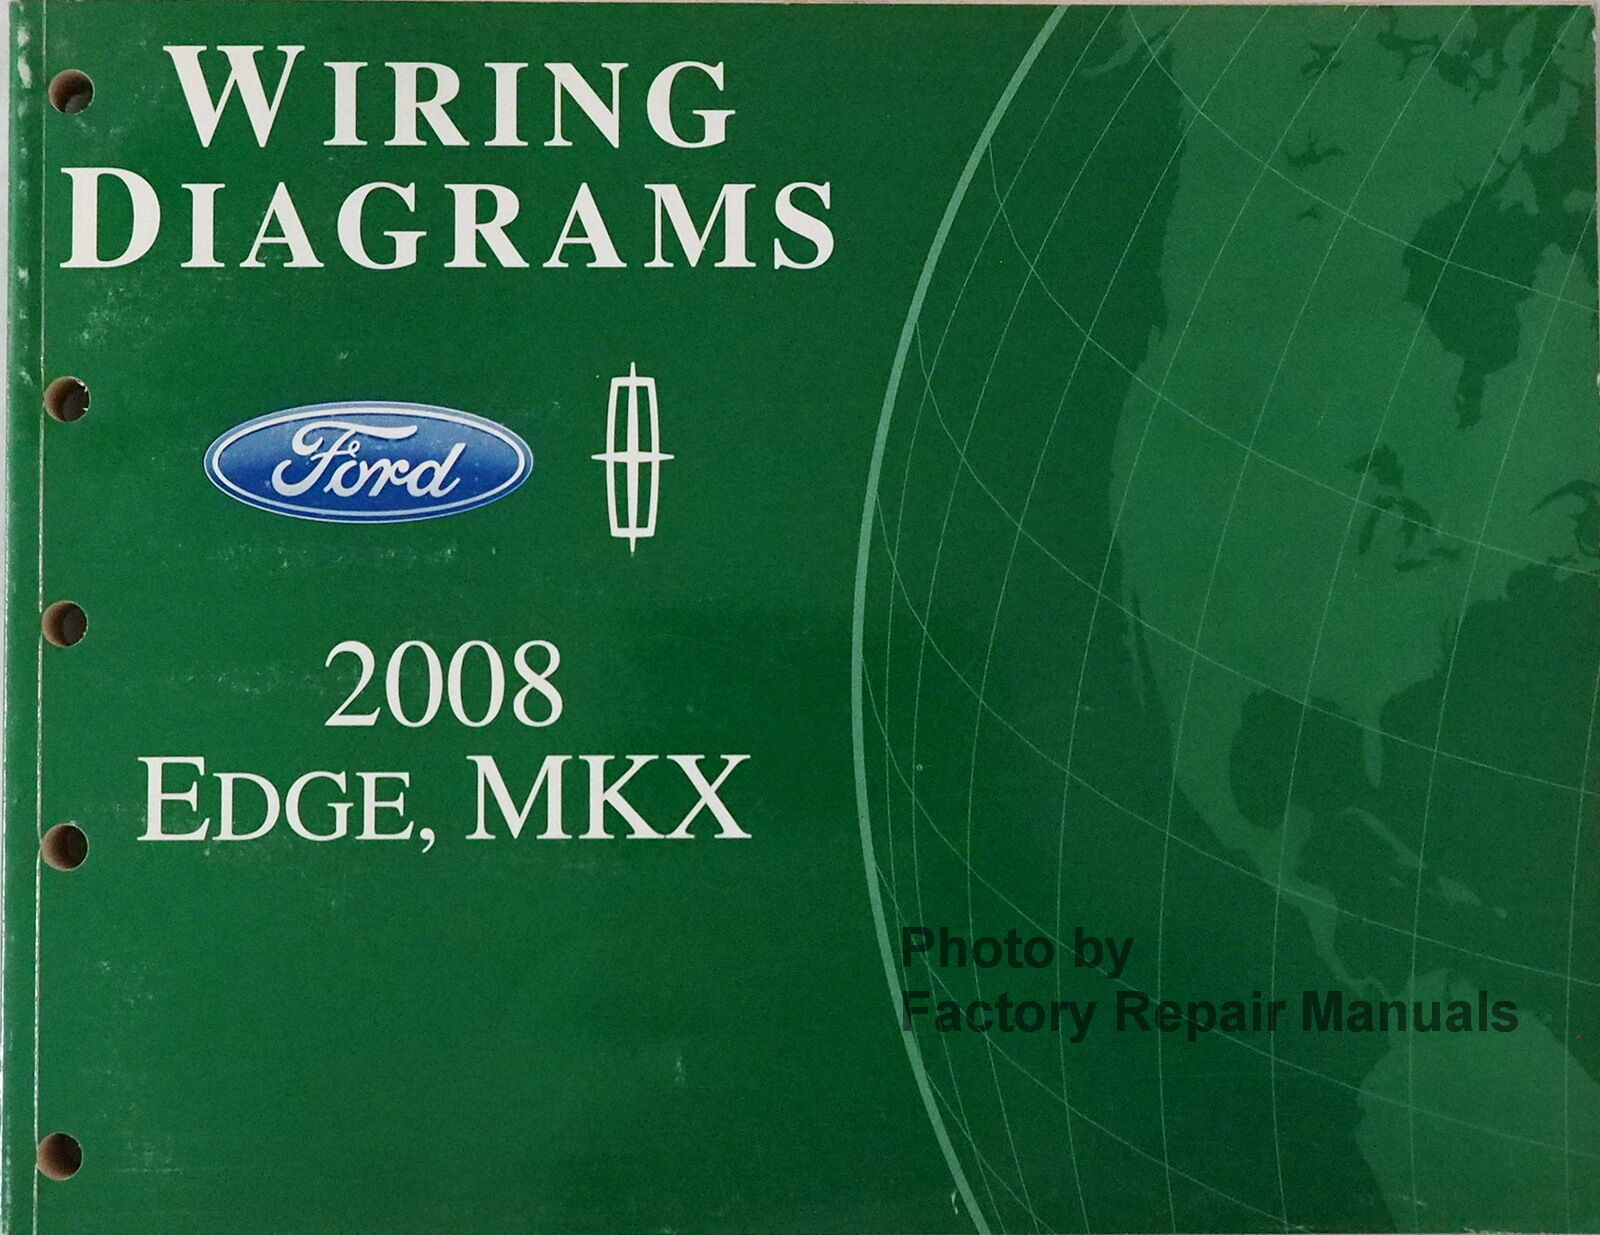 hight resolution of ford 2008 edge mkx wiring diagram